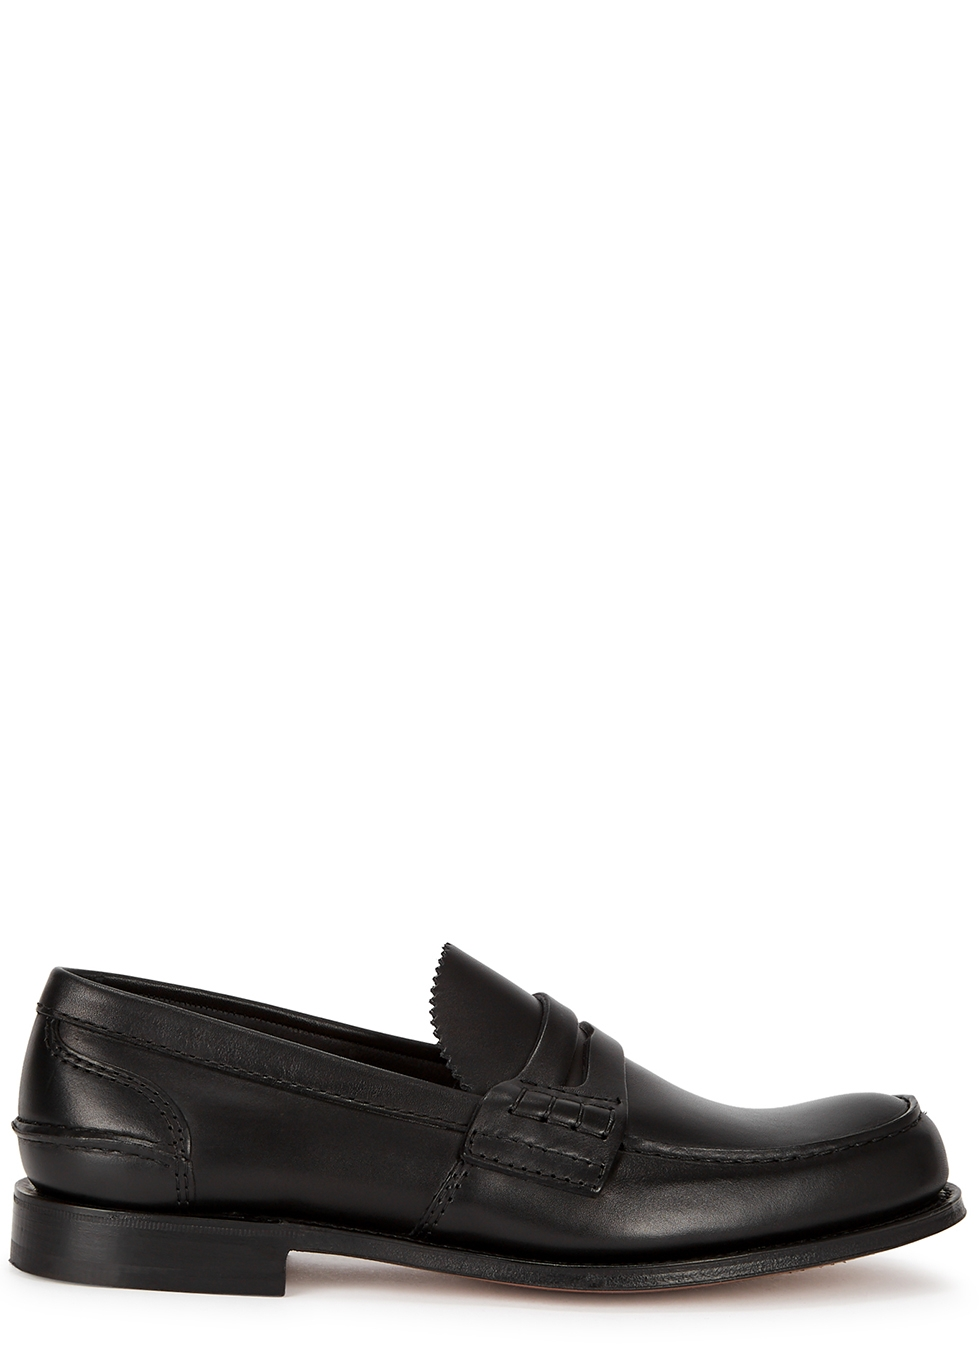 Pembrey black leather penny loafers